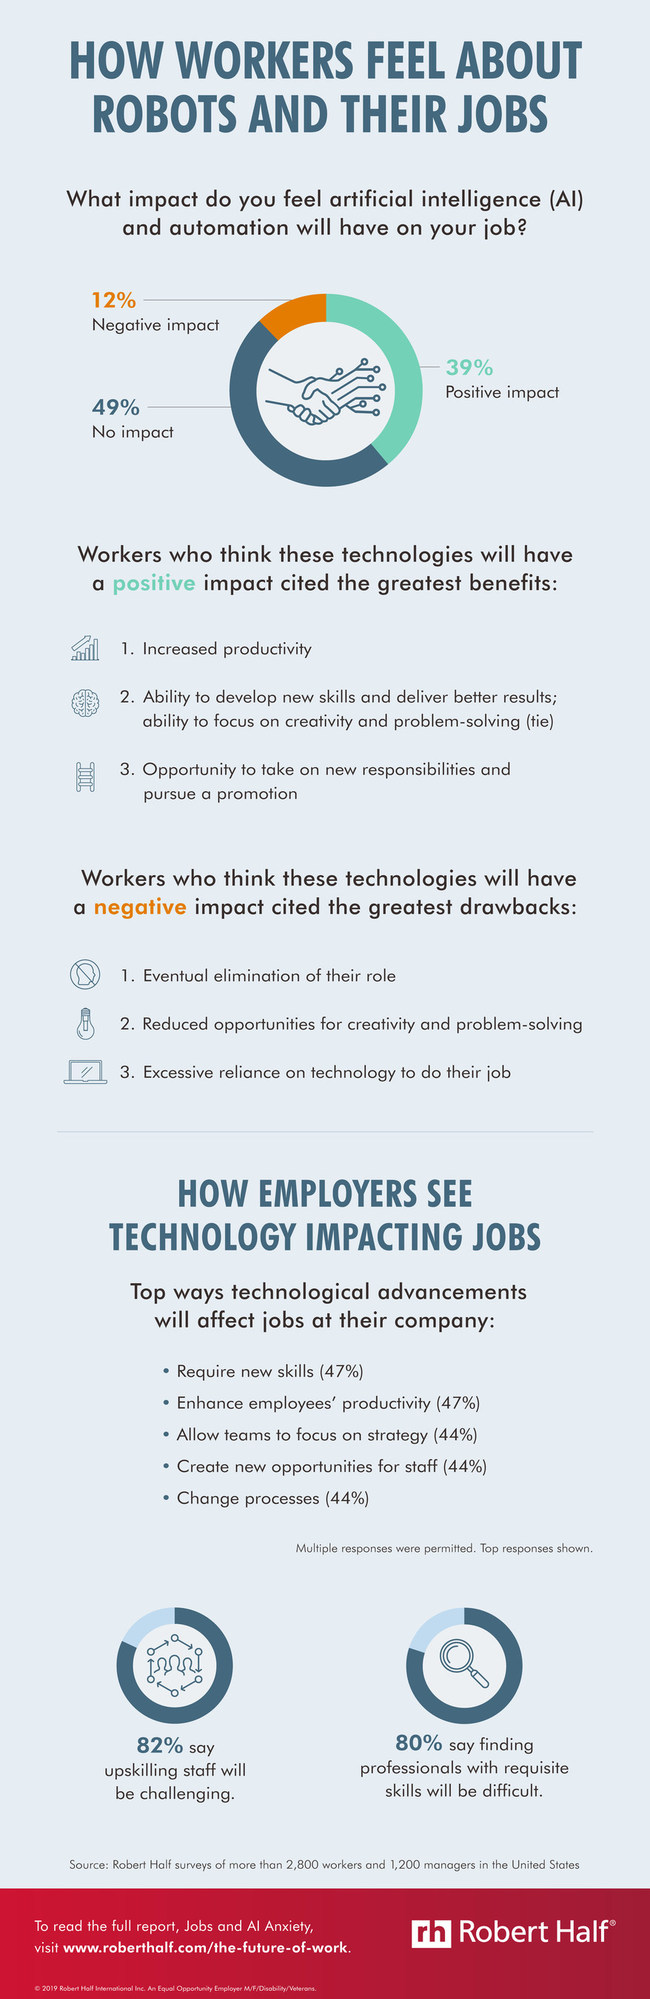 New Robert Half research reveals how employees and employers think emerging technologies will impact the workforce. View this infographic for the survey findings: https://www.roberthalf.com/blog/the-future-of-work/how-workers-feel-about-robots-and-their-jobs